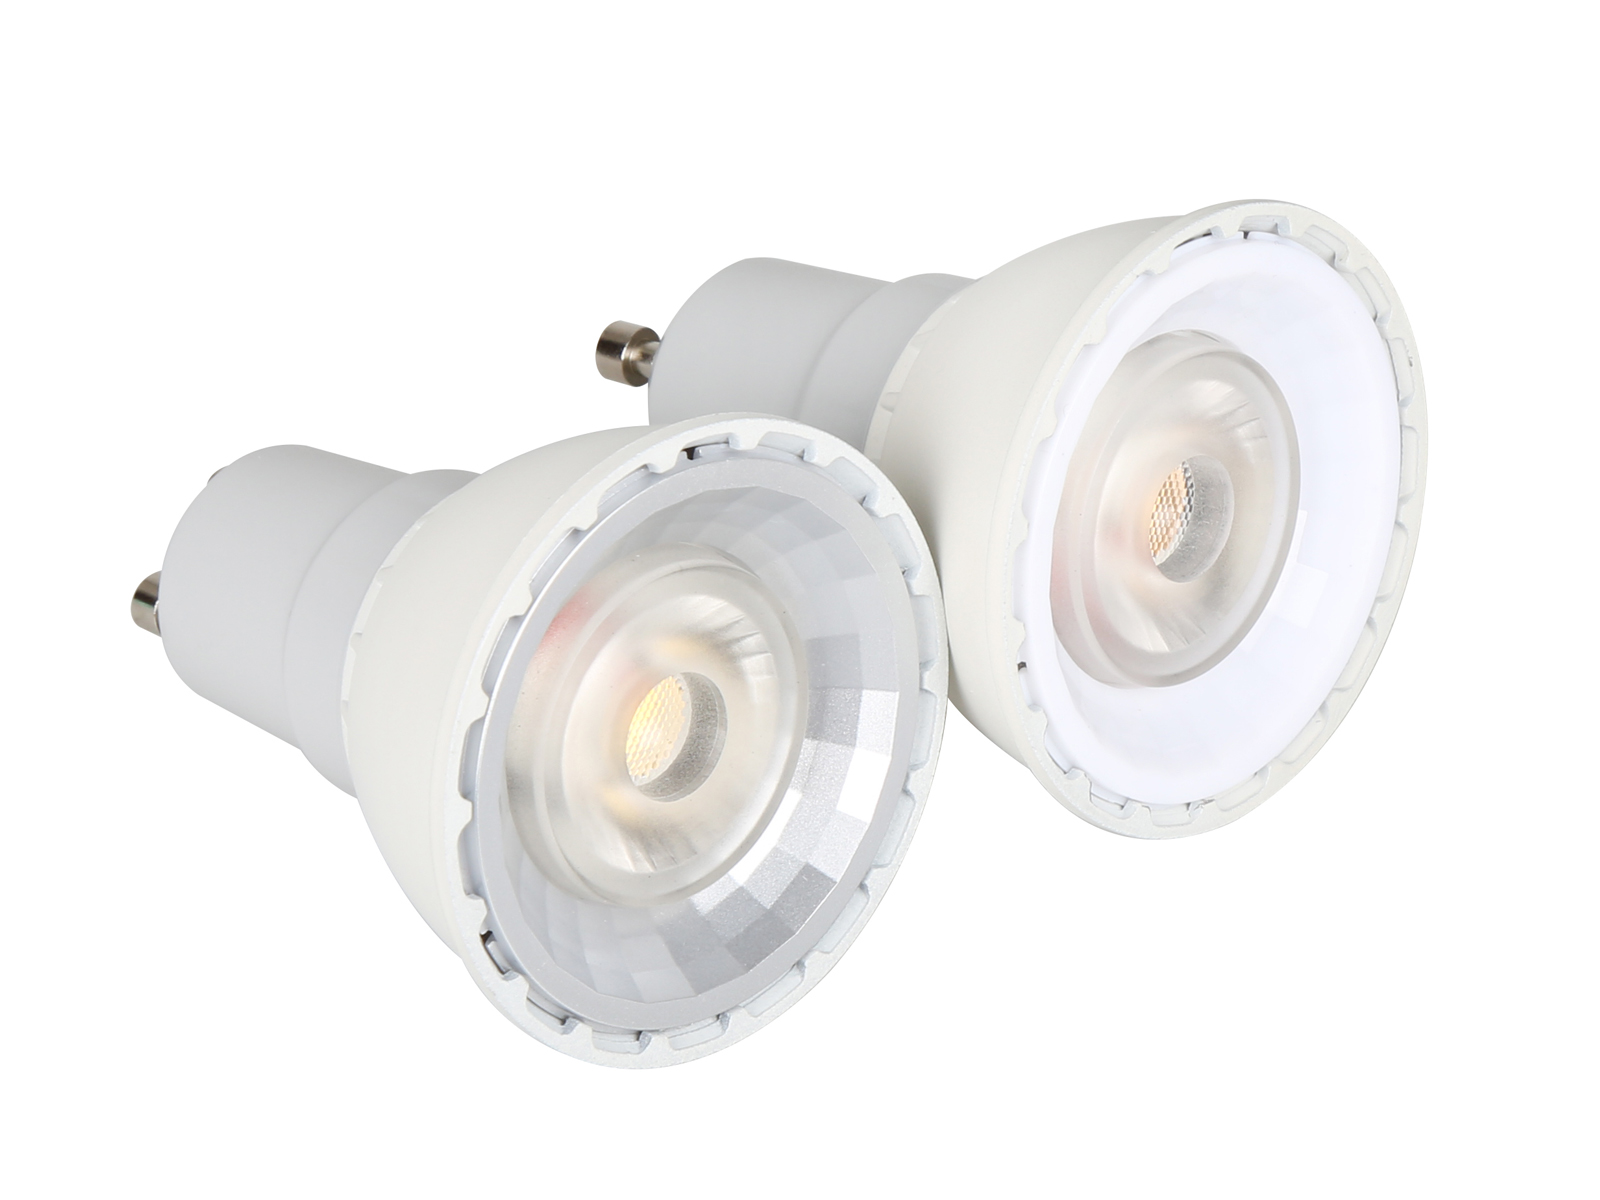 SP48 1 Dimmable LED Spotlight